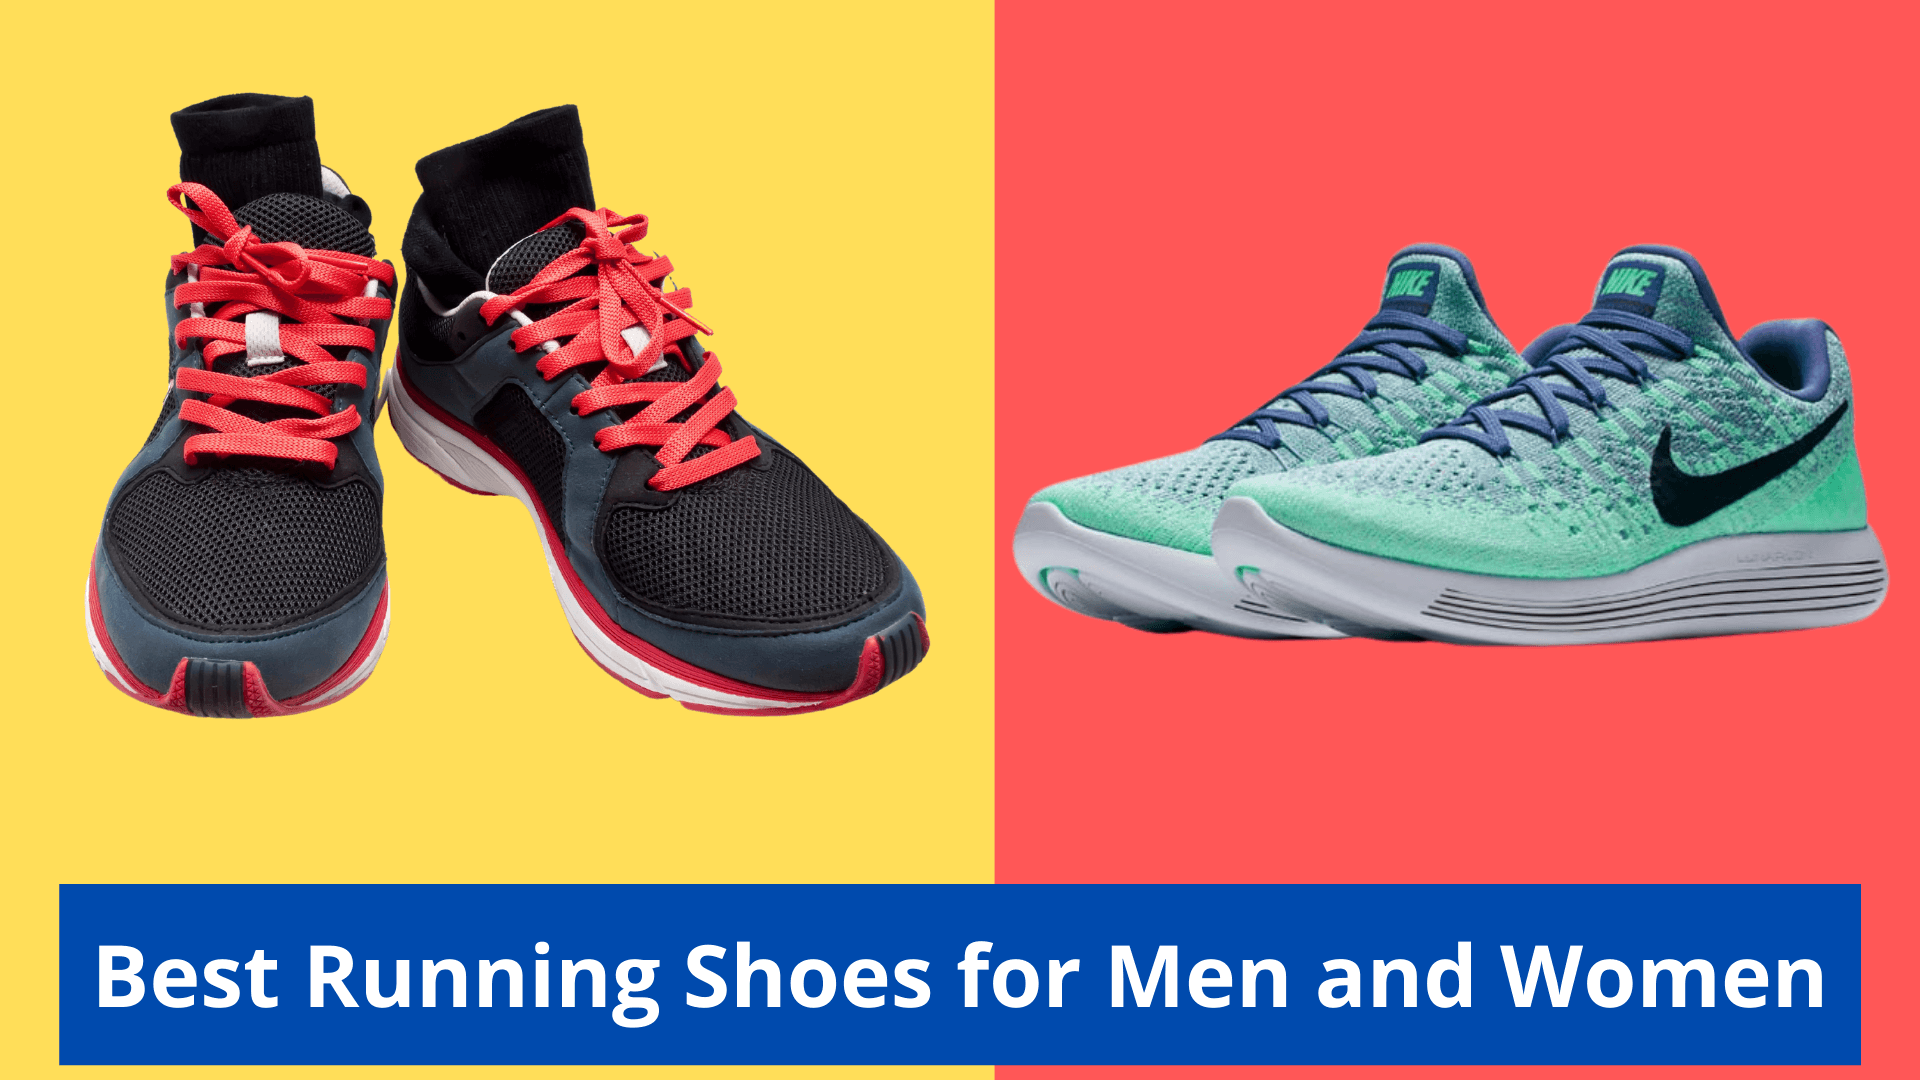 Best Running Shoes Reviews and Buying Guide